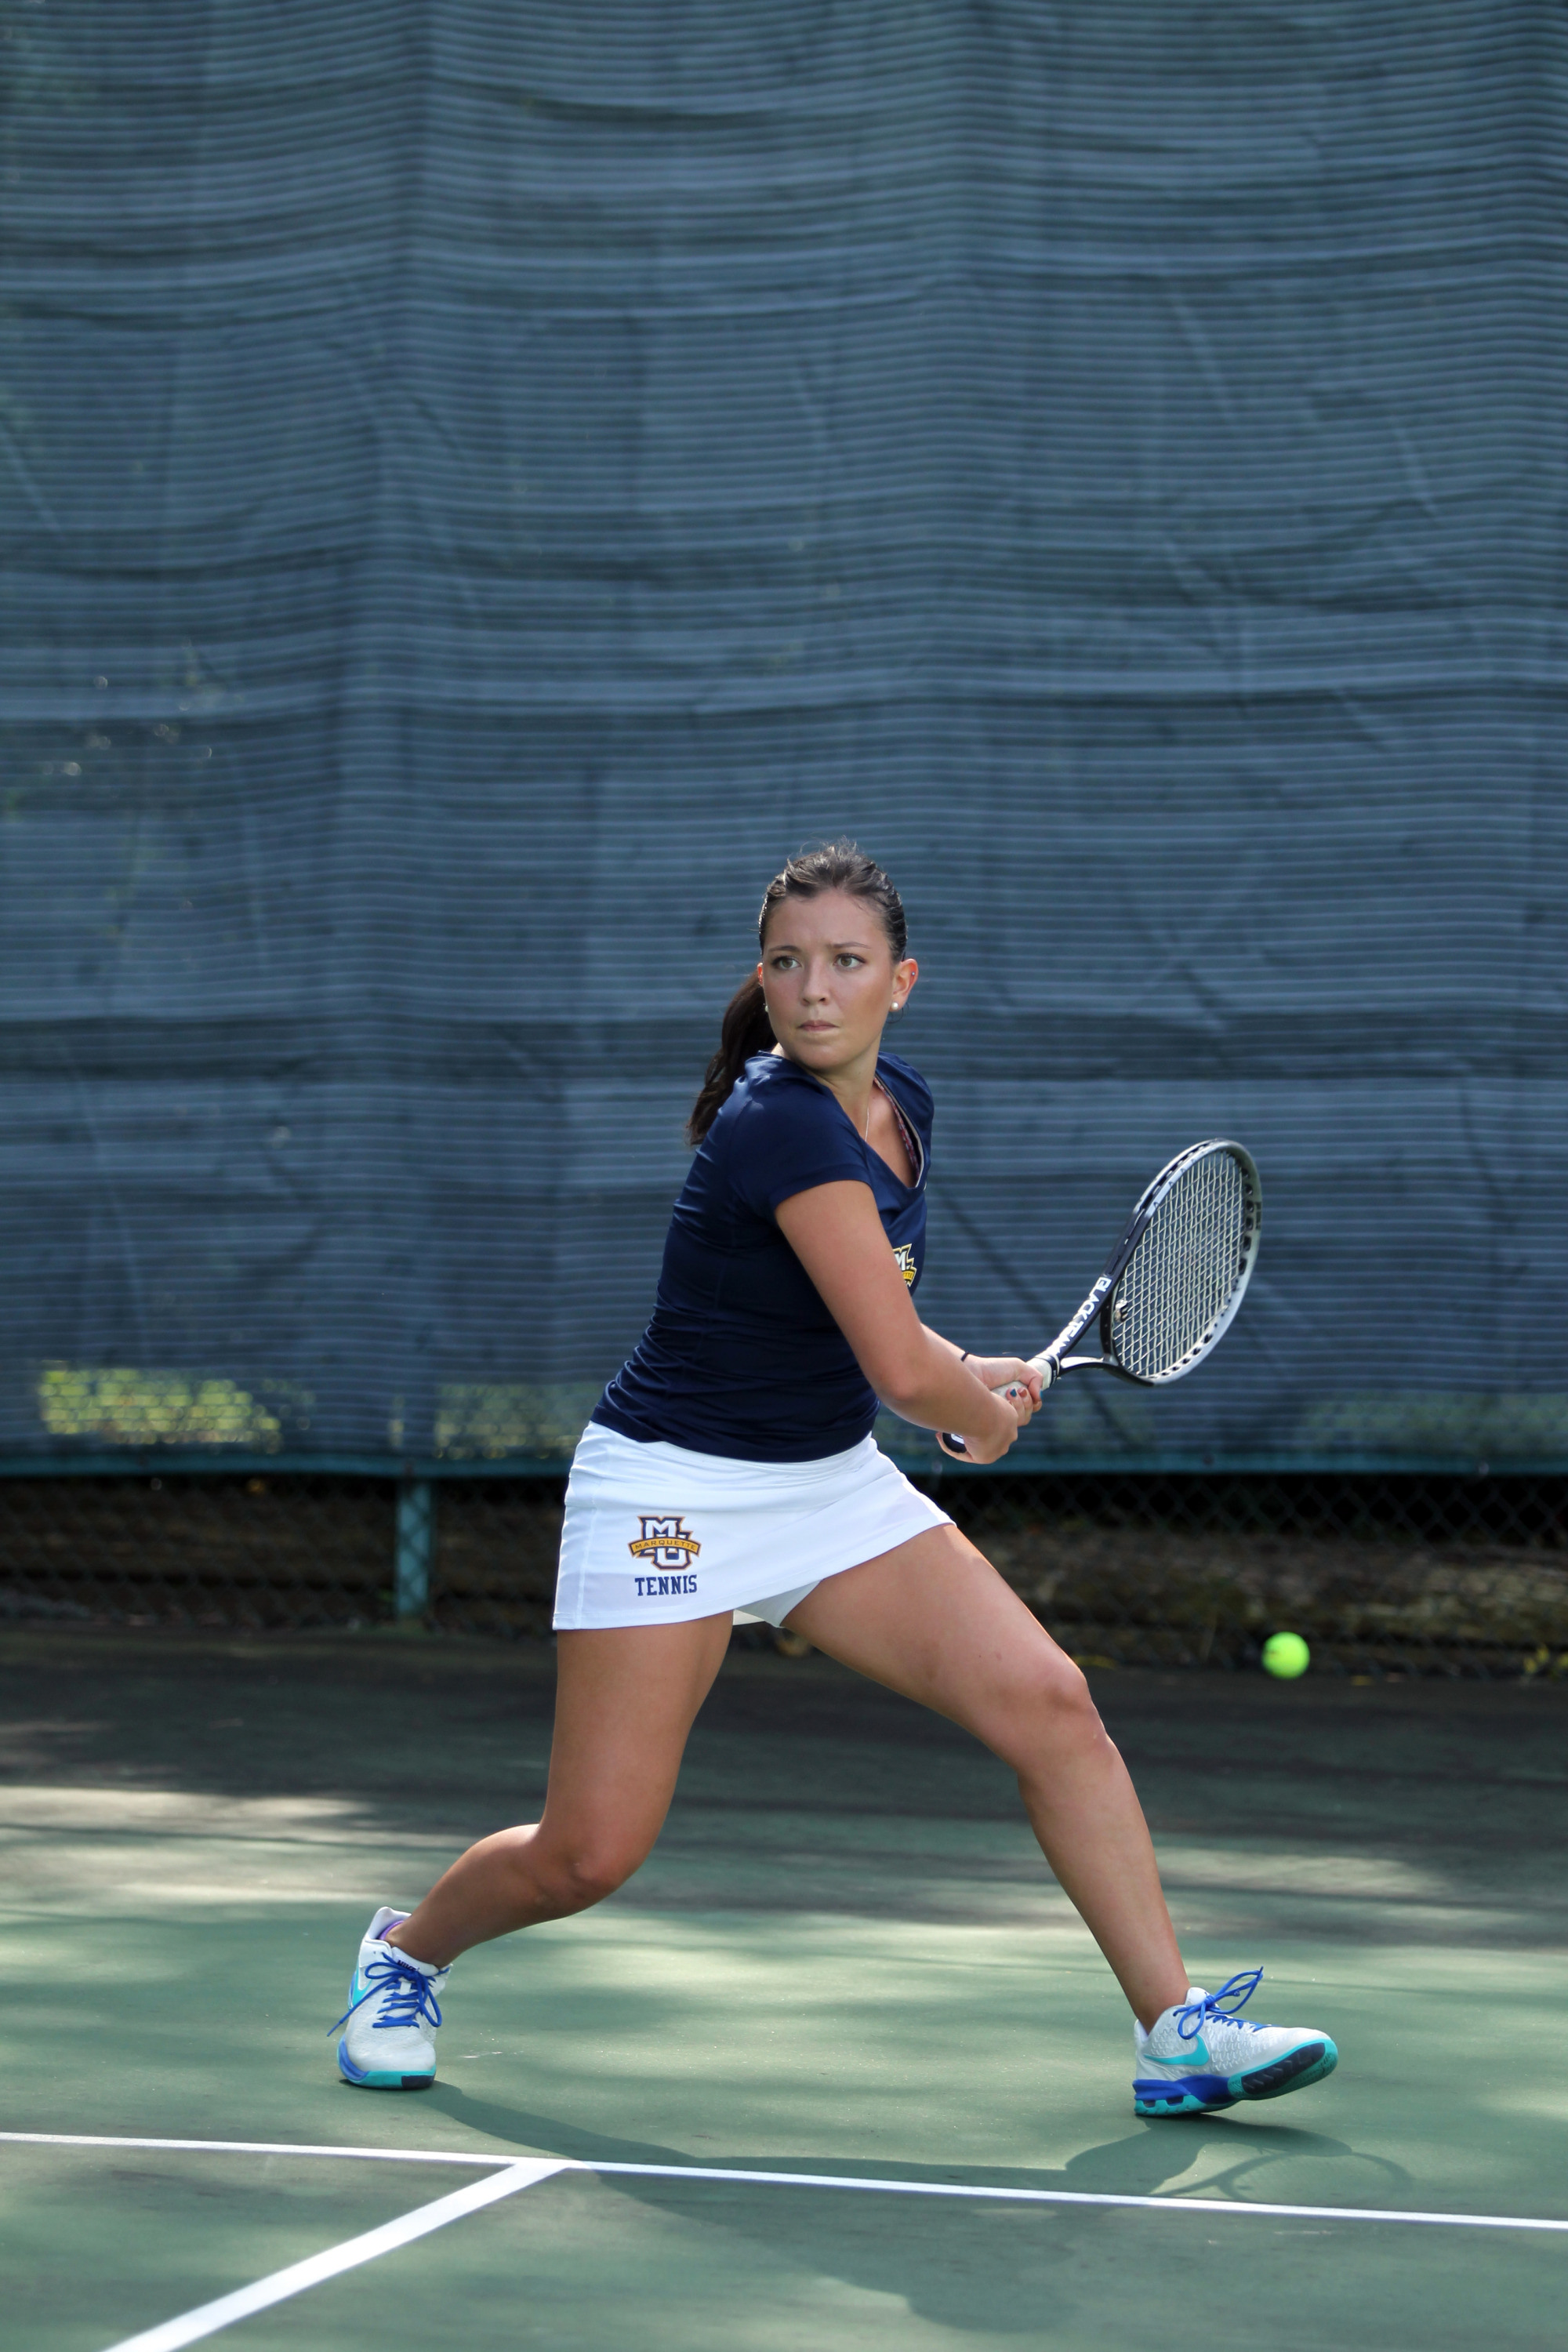 Aleeza Kanner won her doubles match with Leoni Daems on Friday